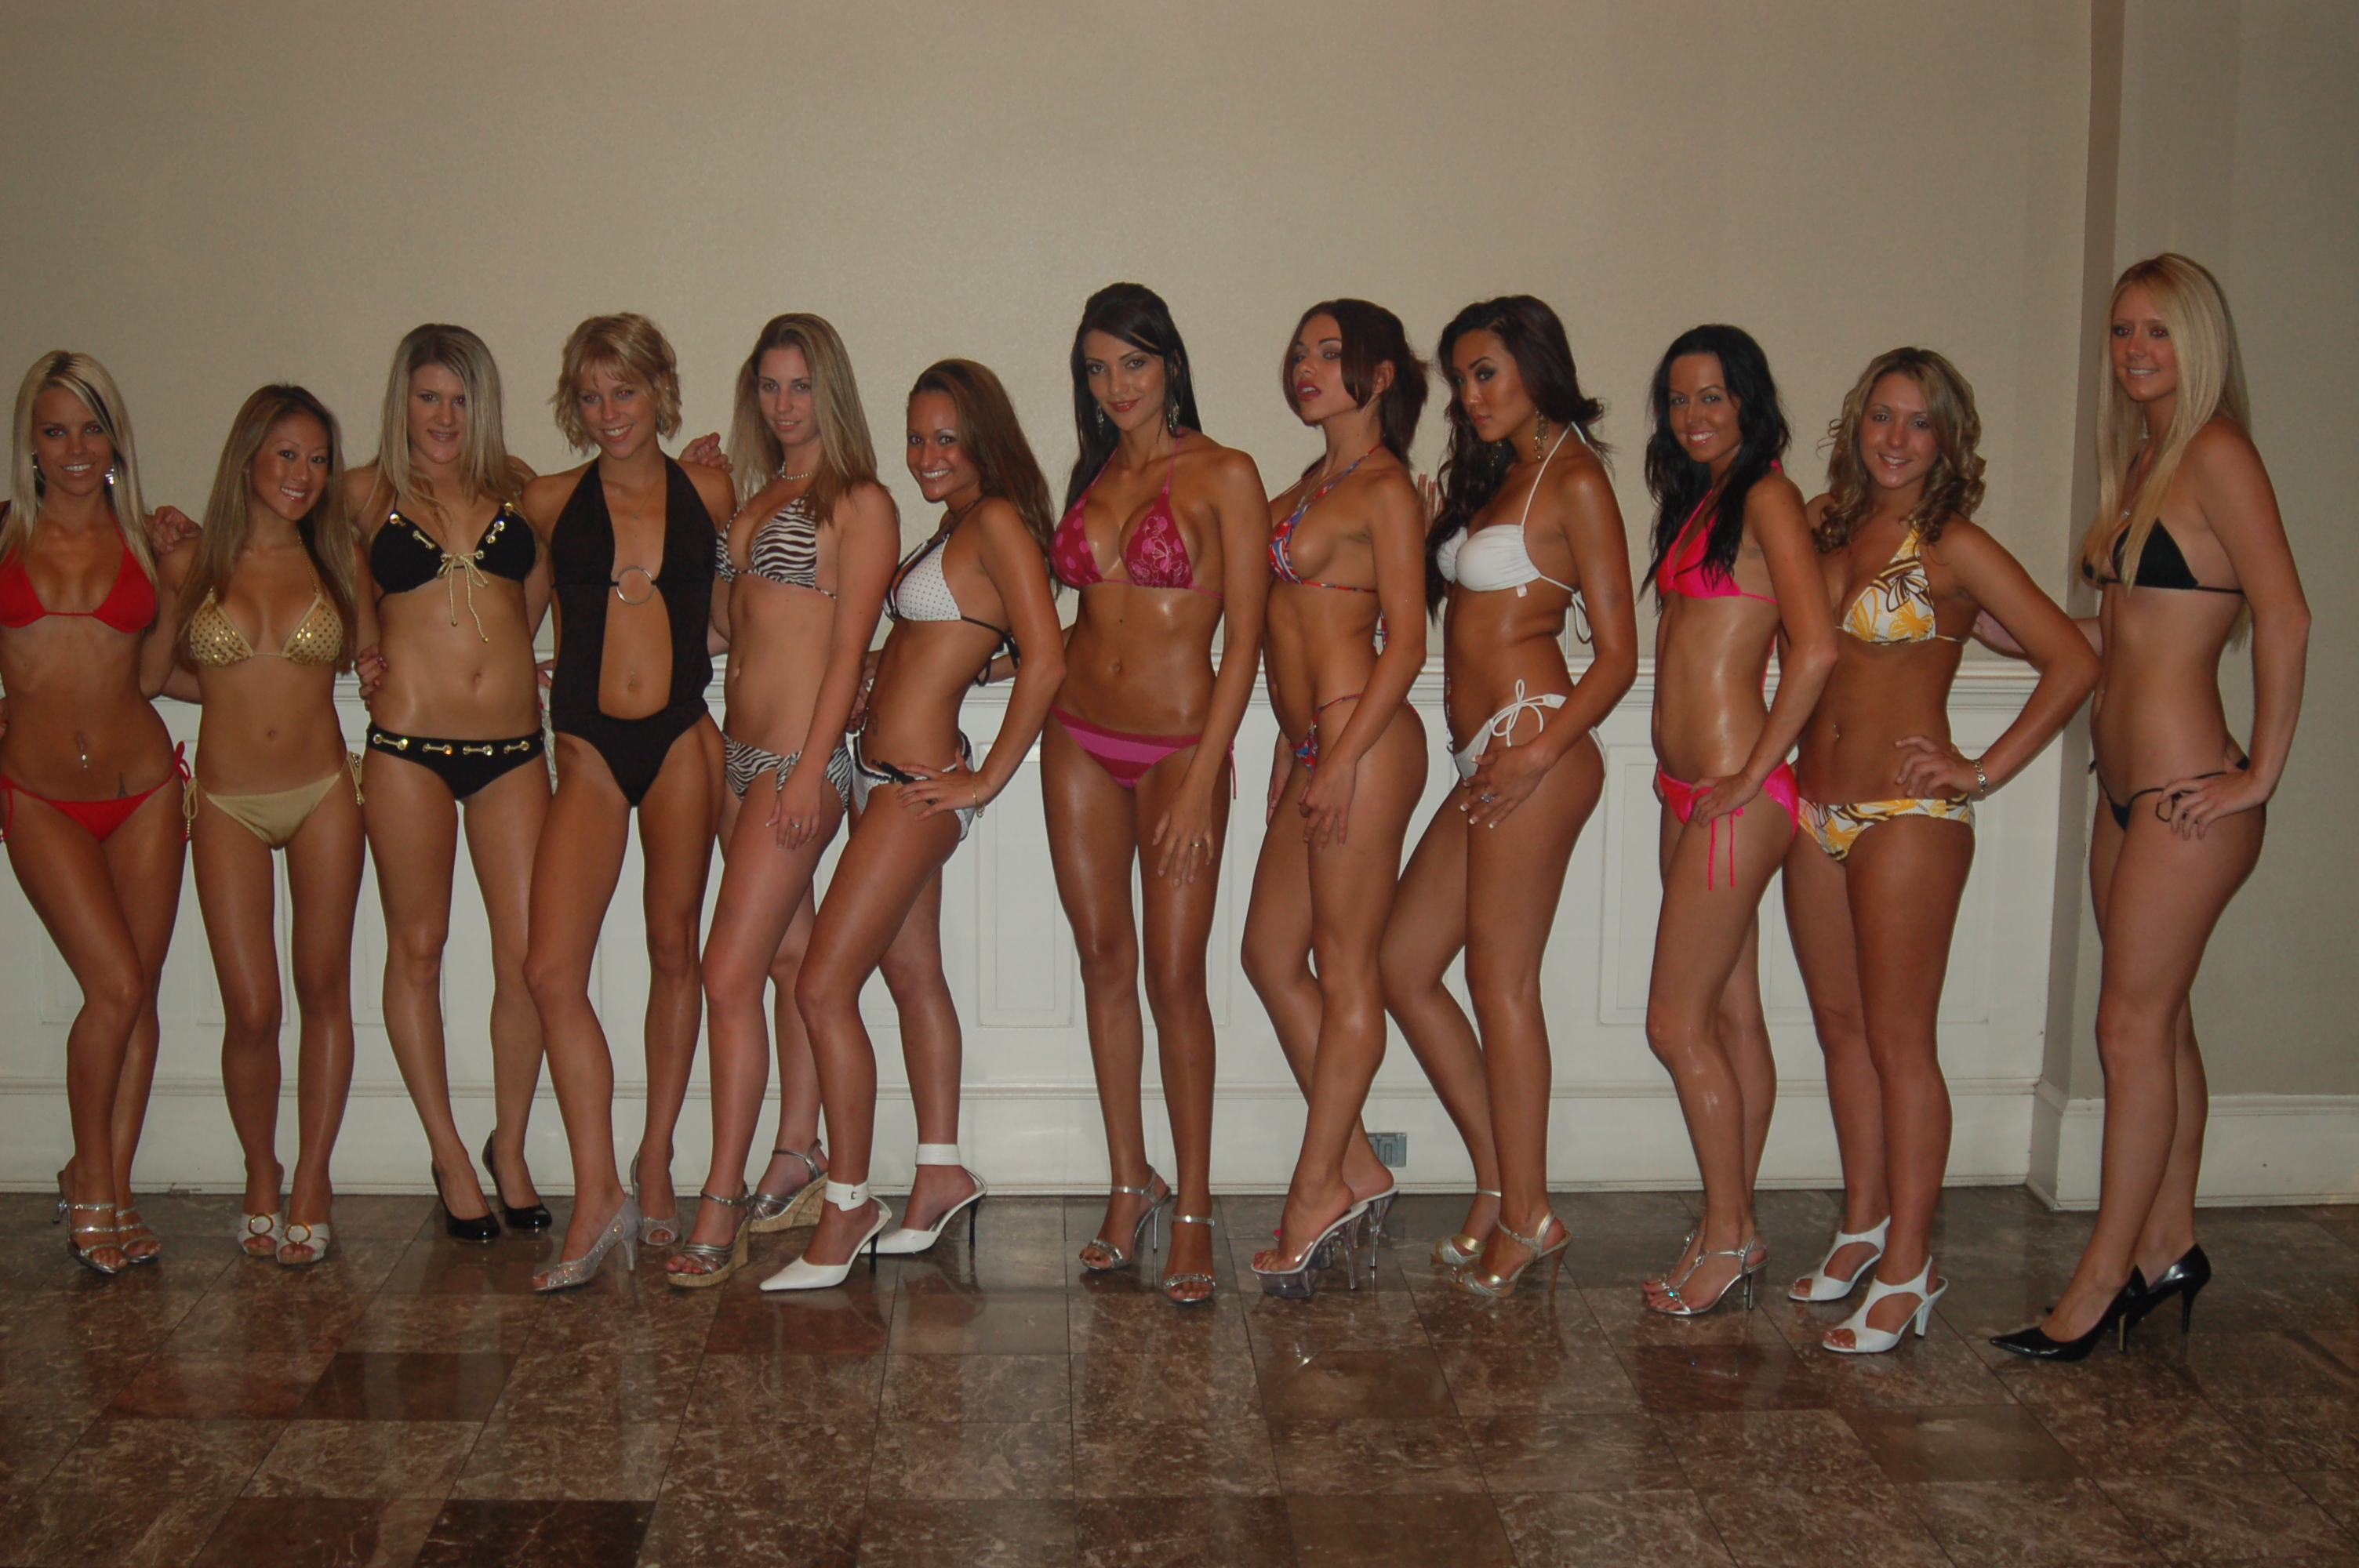 Description Bridges Bikini Contest 91.jpg